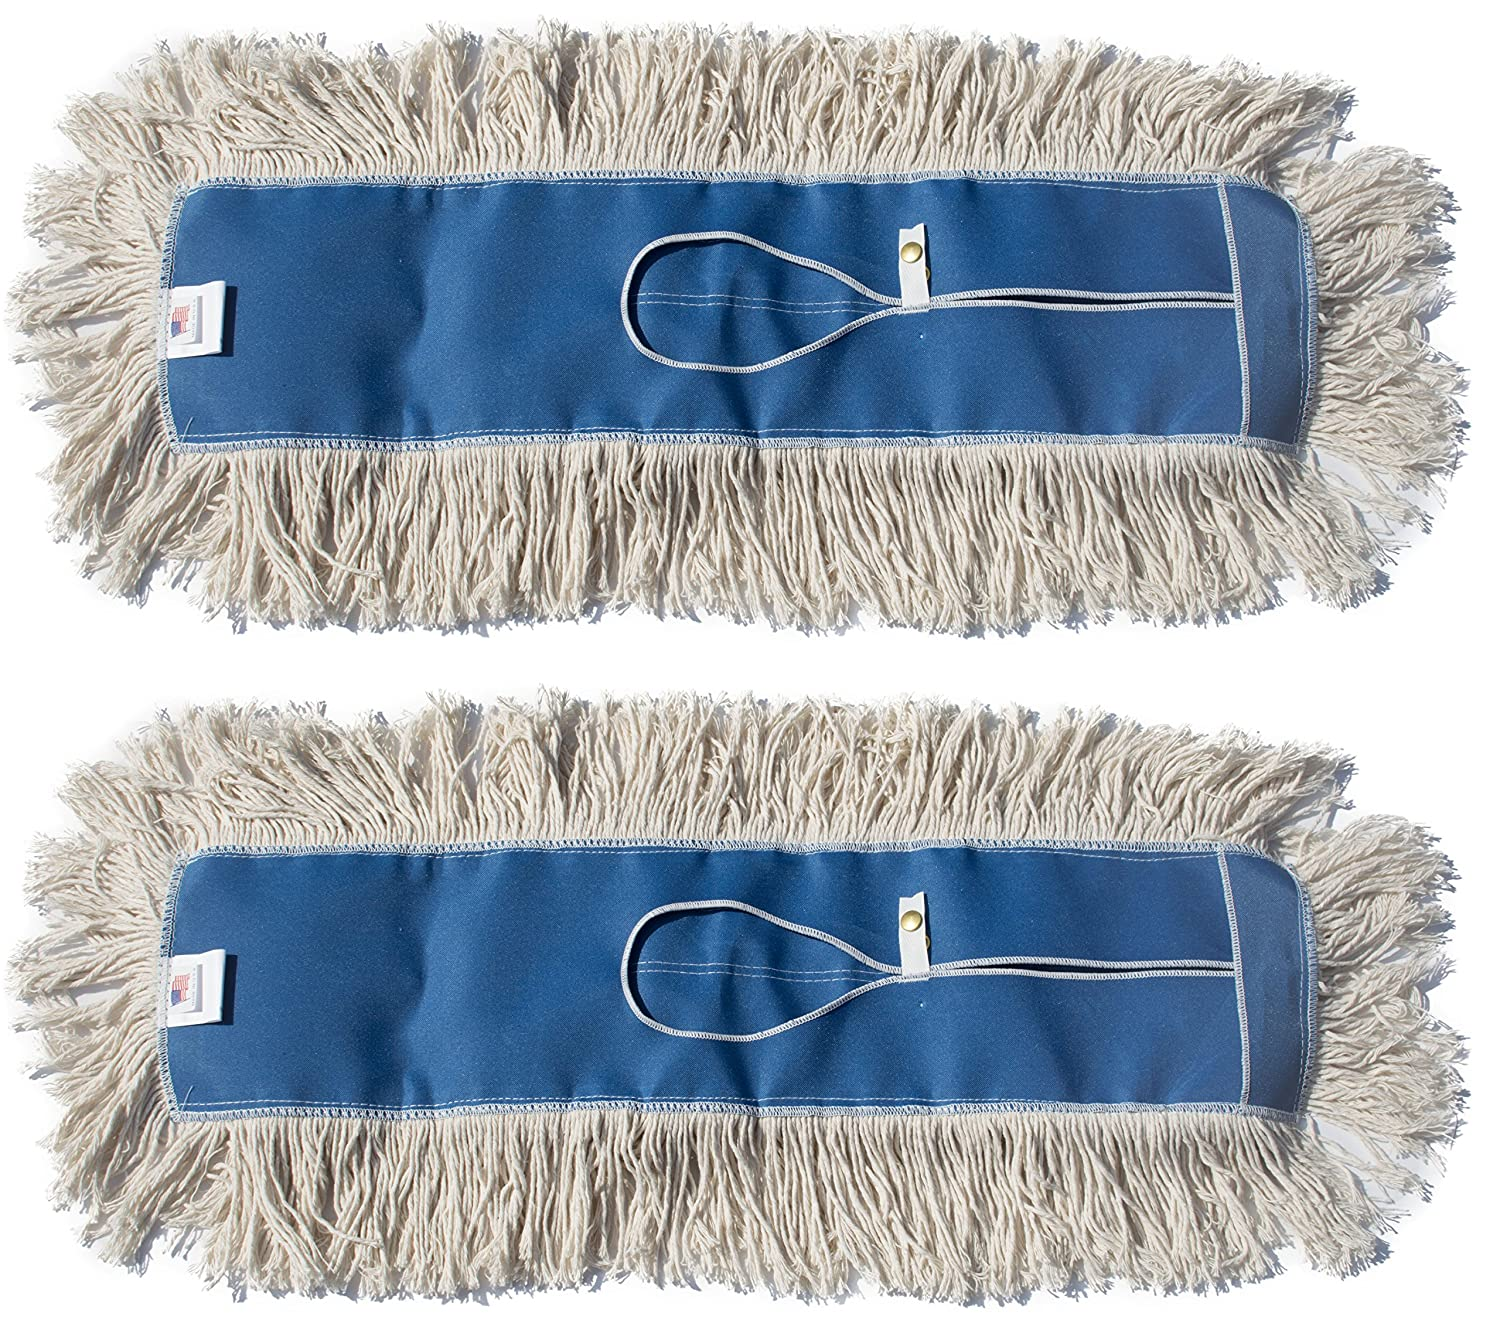 Commercial Cleaner Mop Head Replacement 1 Pack, 60 Wide X 5 Nine Forty Industrial Strength Ultimate Cotton Floor Dust Mop Refill